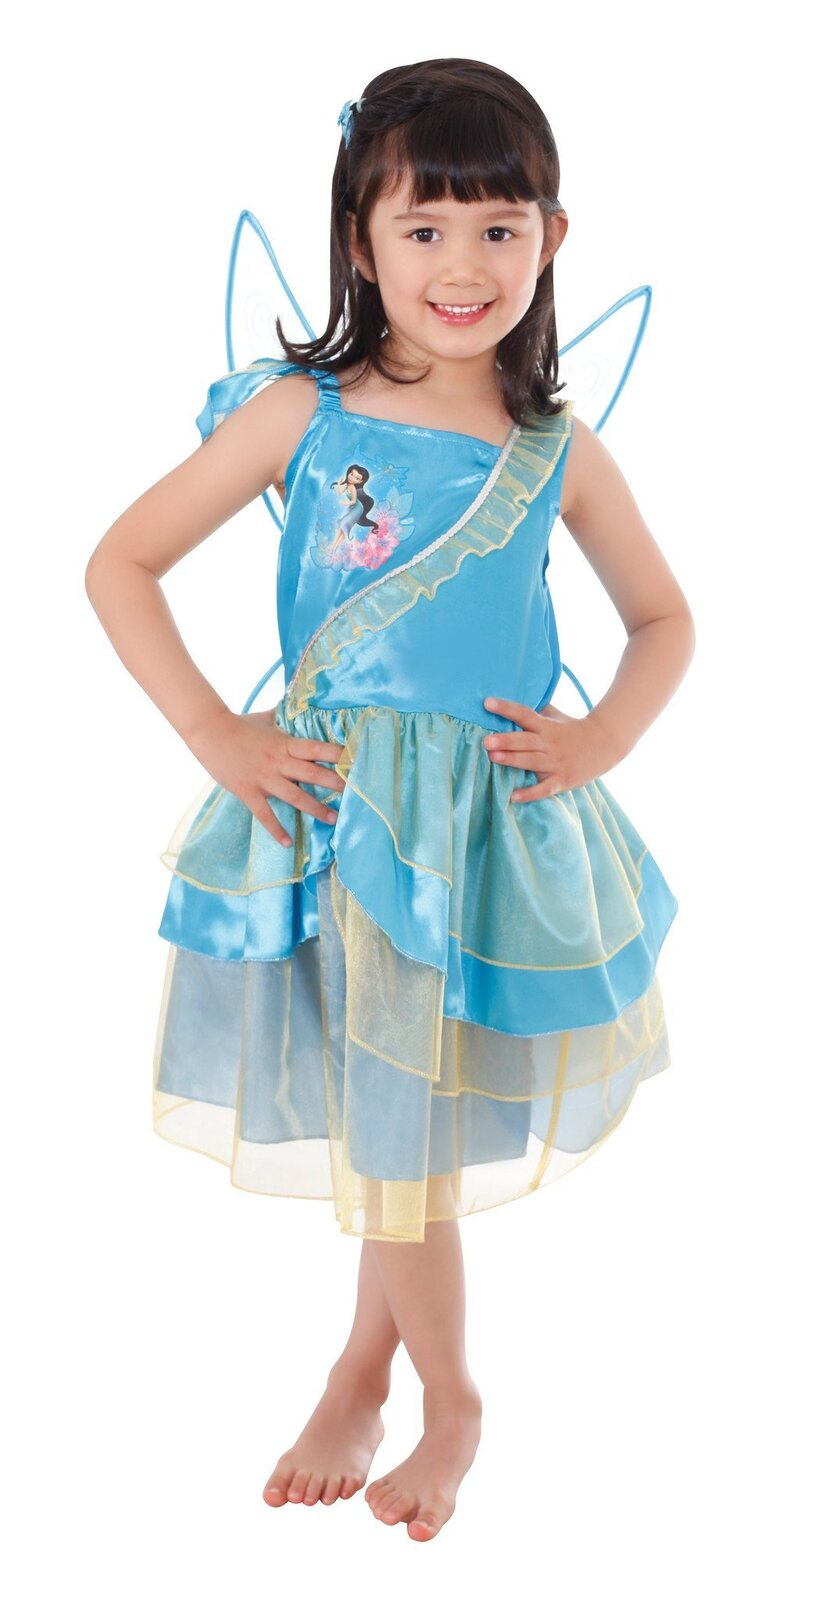 Silvermist Pirate Deluxe Fairy Child Costume - Buy Online Only